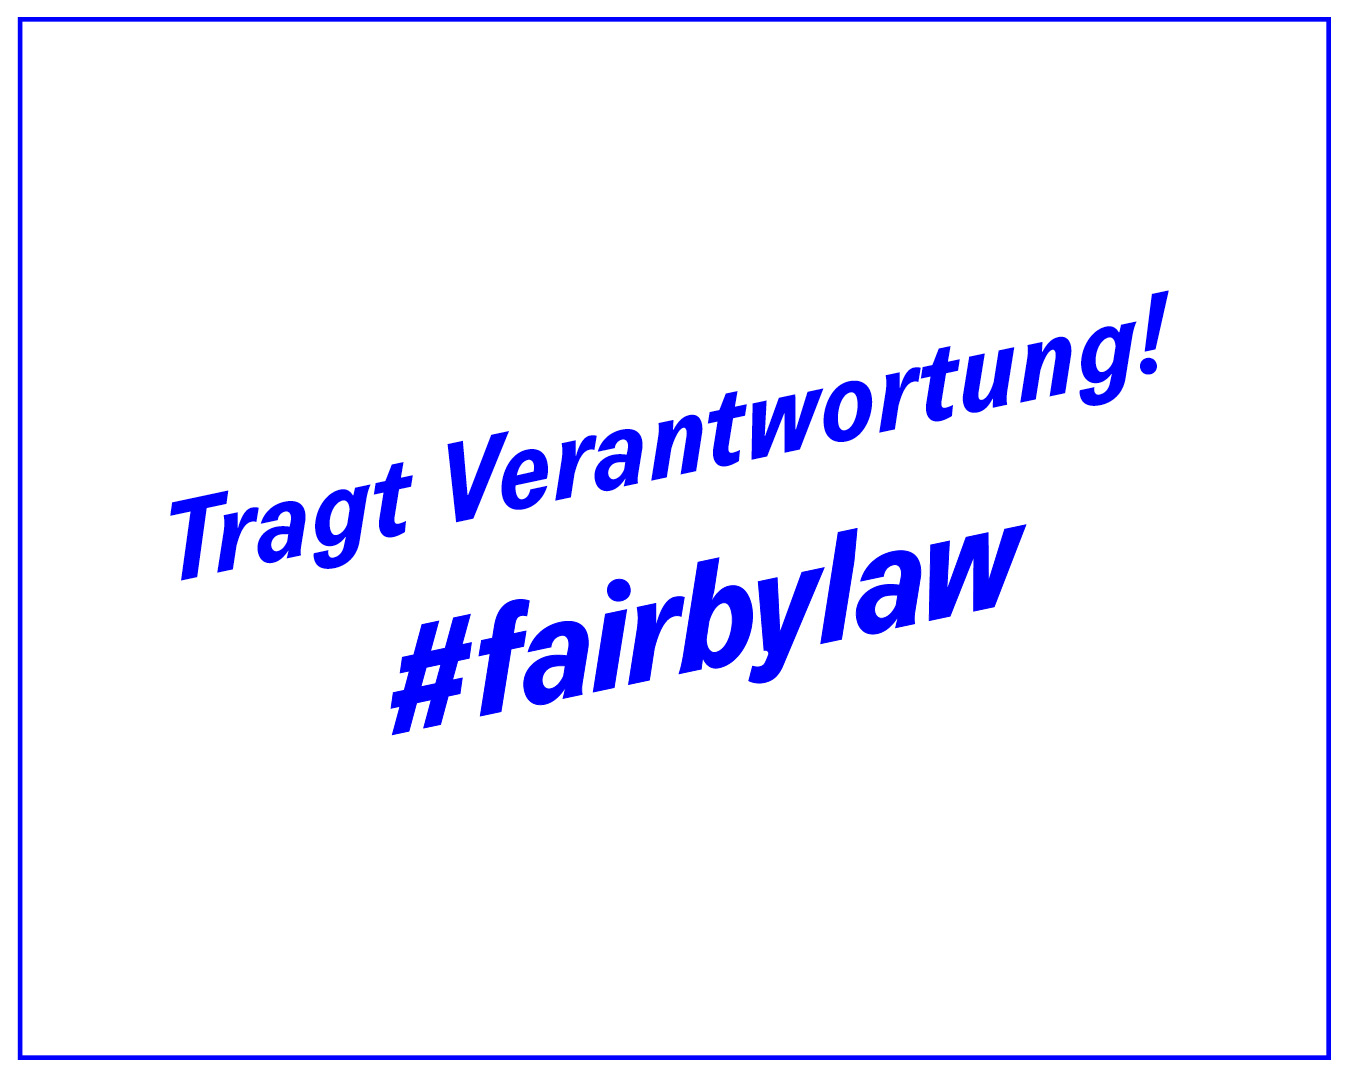 Petition_2019_fairbylaw_Claim_blue_DE